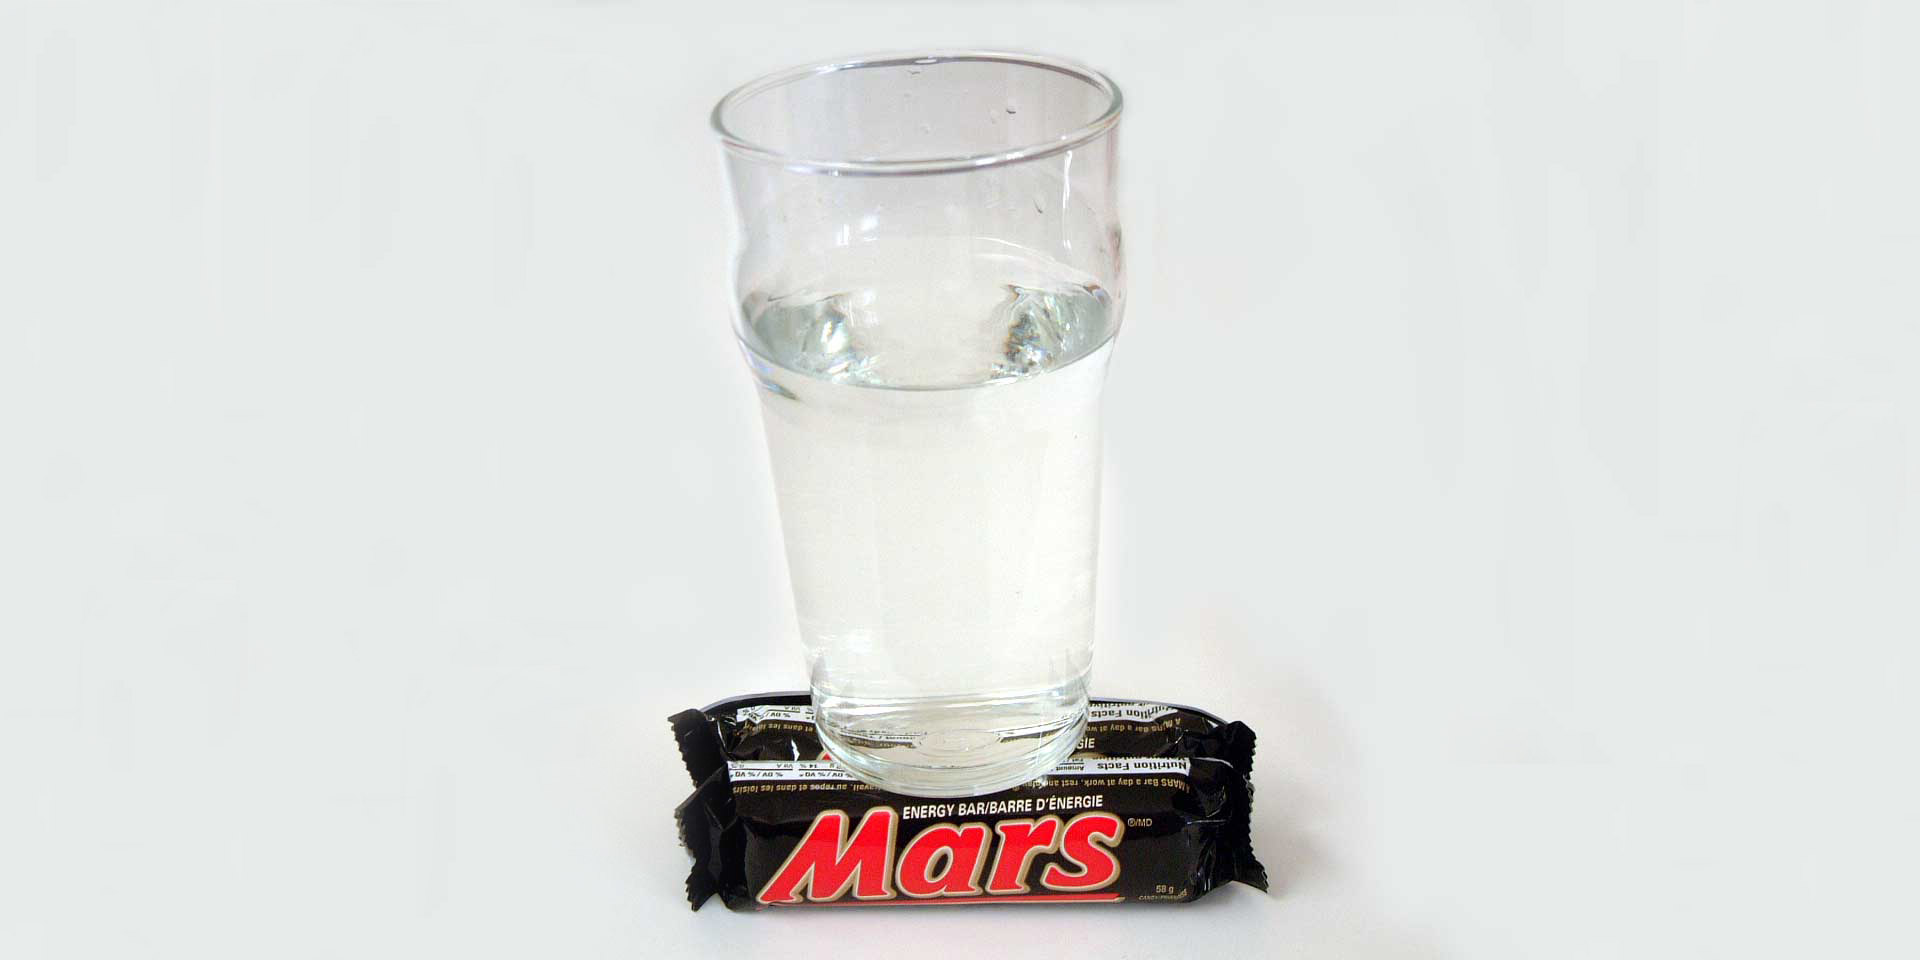 NASA discovers water on Mars